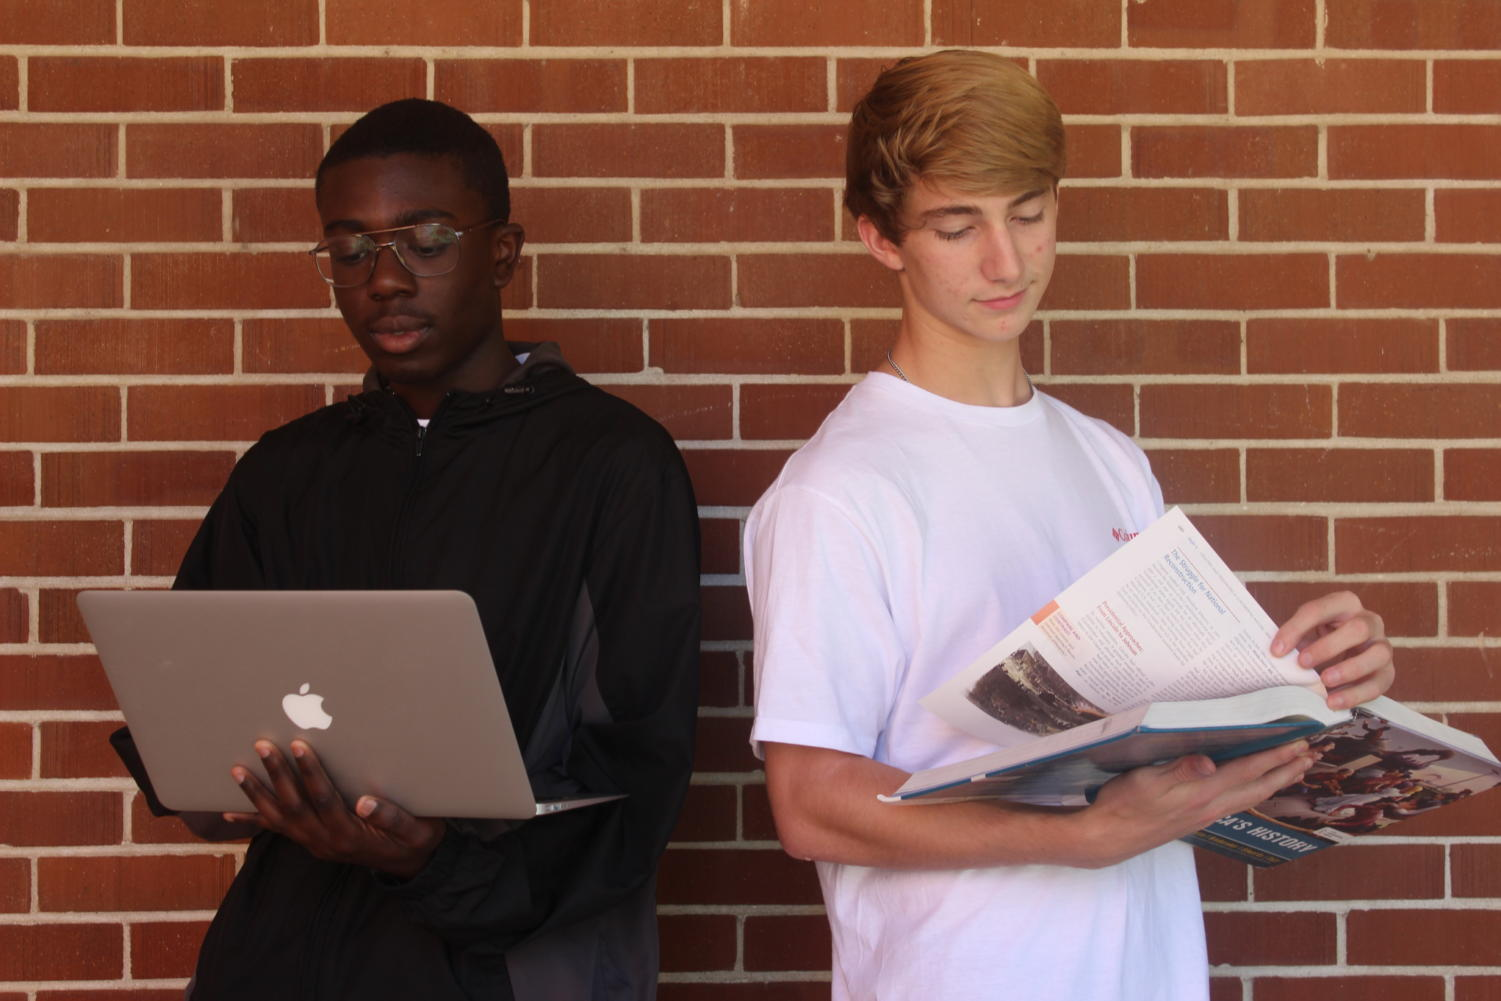 Brandon Mensah (11) studies for his AP US History test using his laptop, while Jacob Hatfield (11) studies with his textbook.